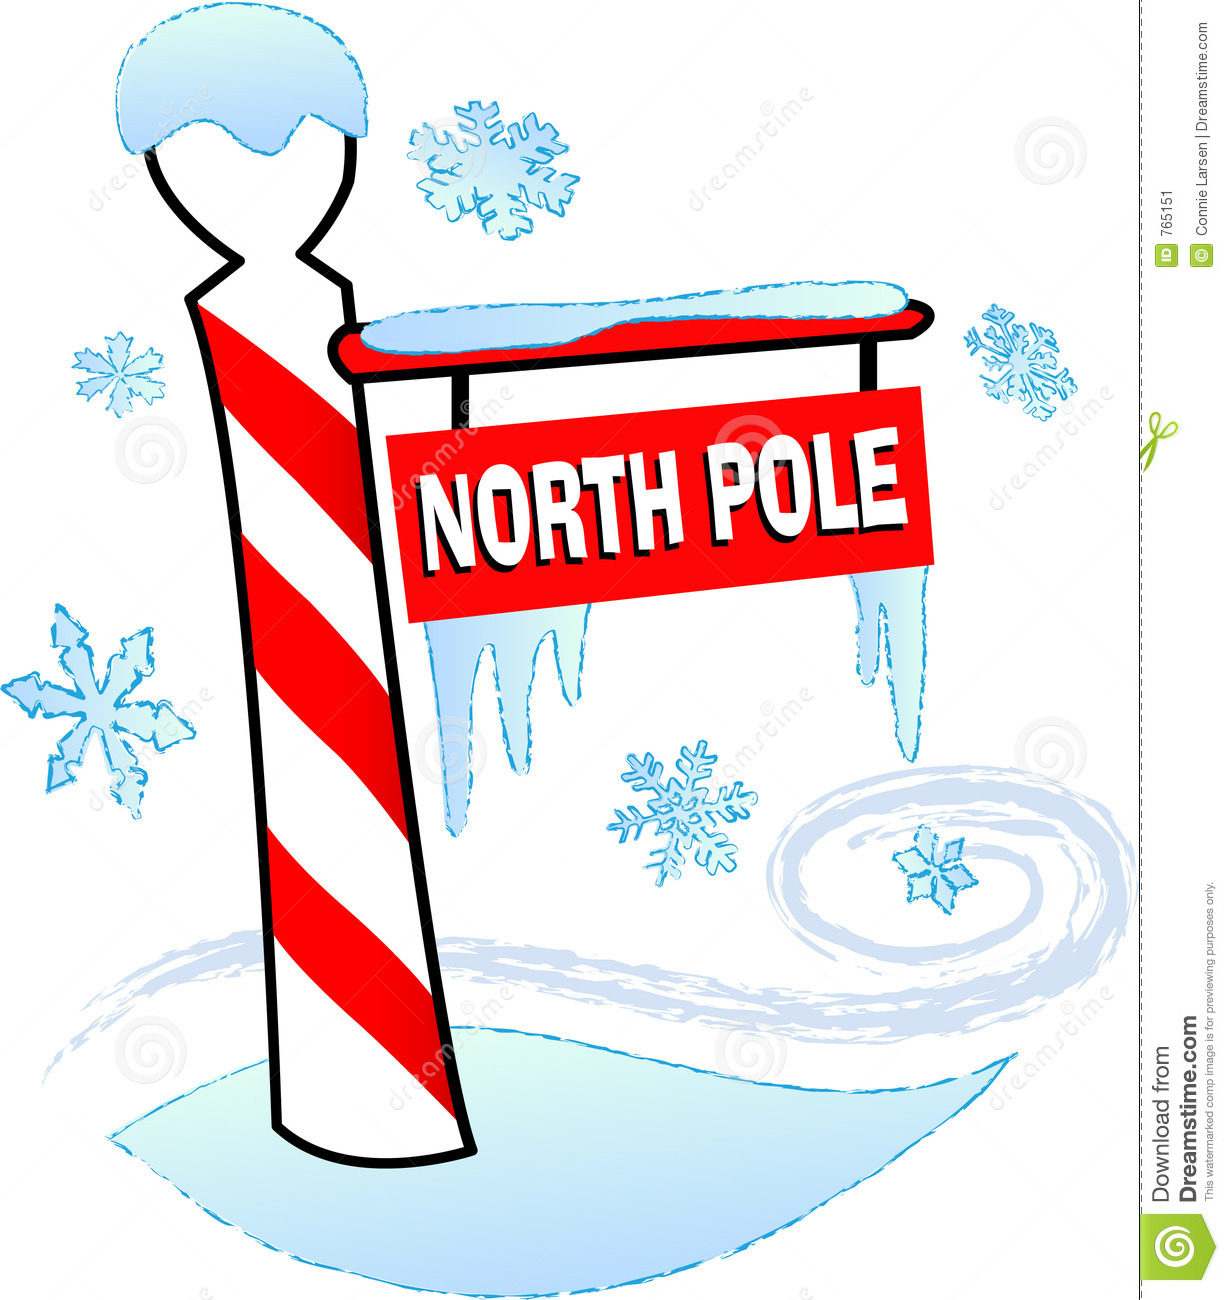 Illustration Of A North Pole Sign Surrounded By Snow And Ice